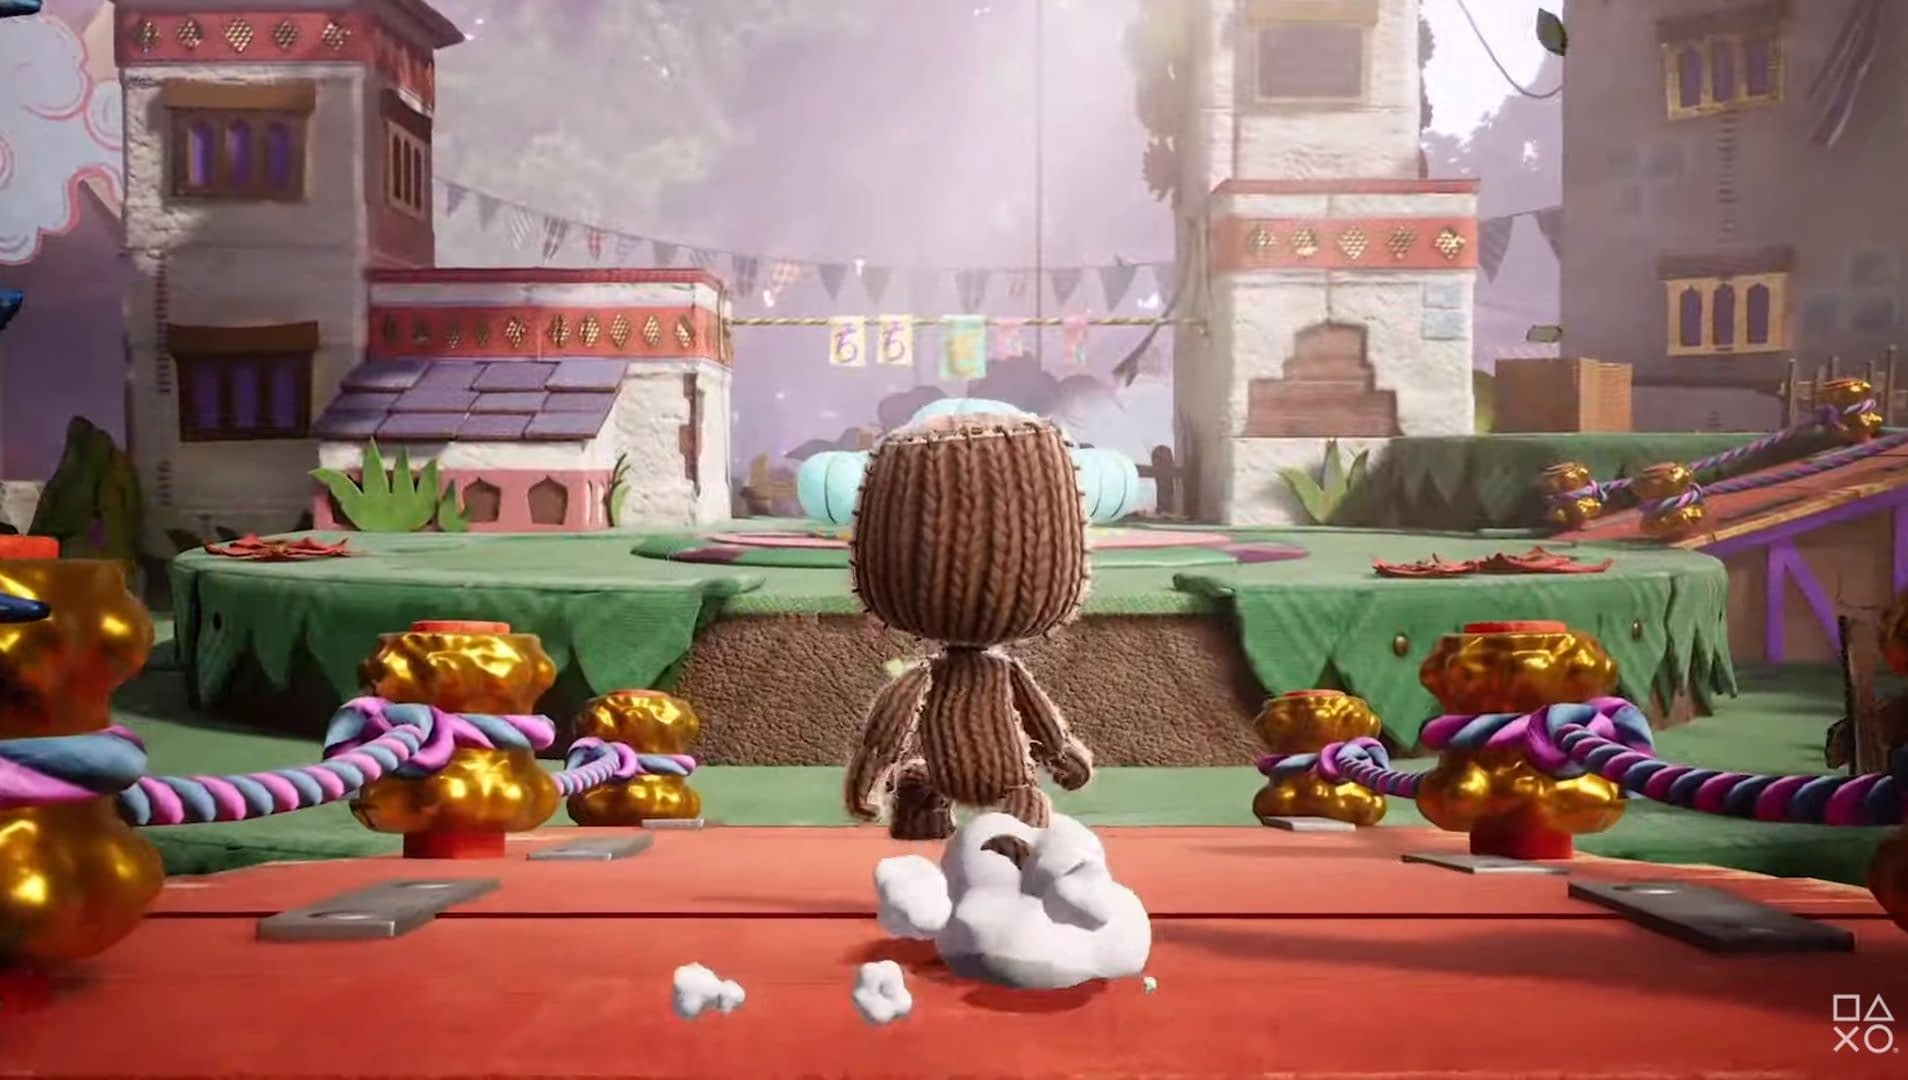 Games to play on PS5: Sackboy